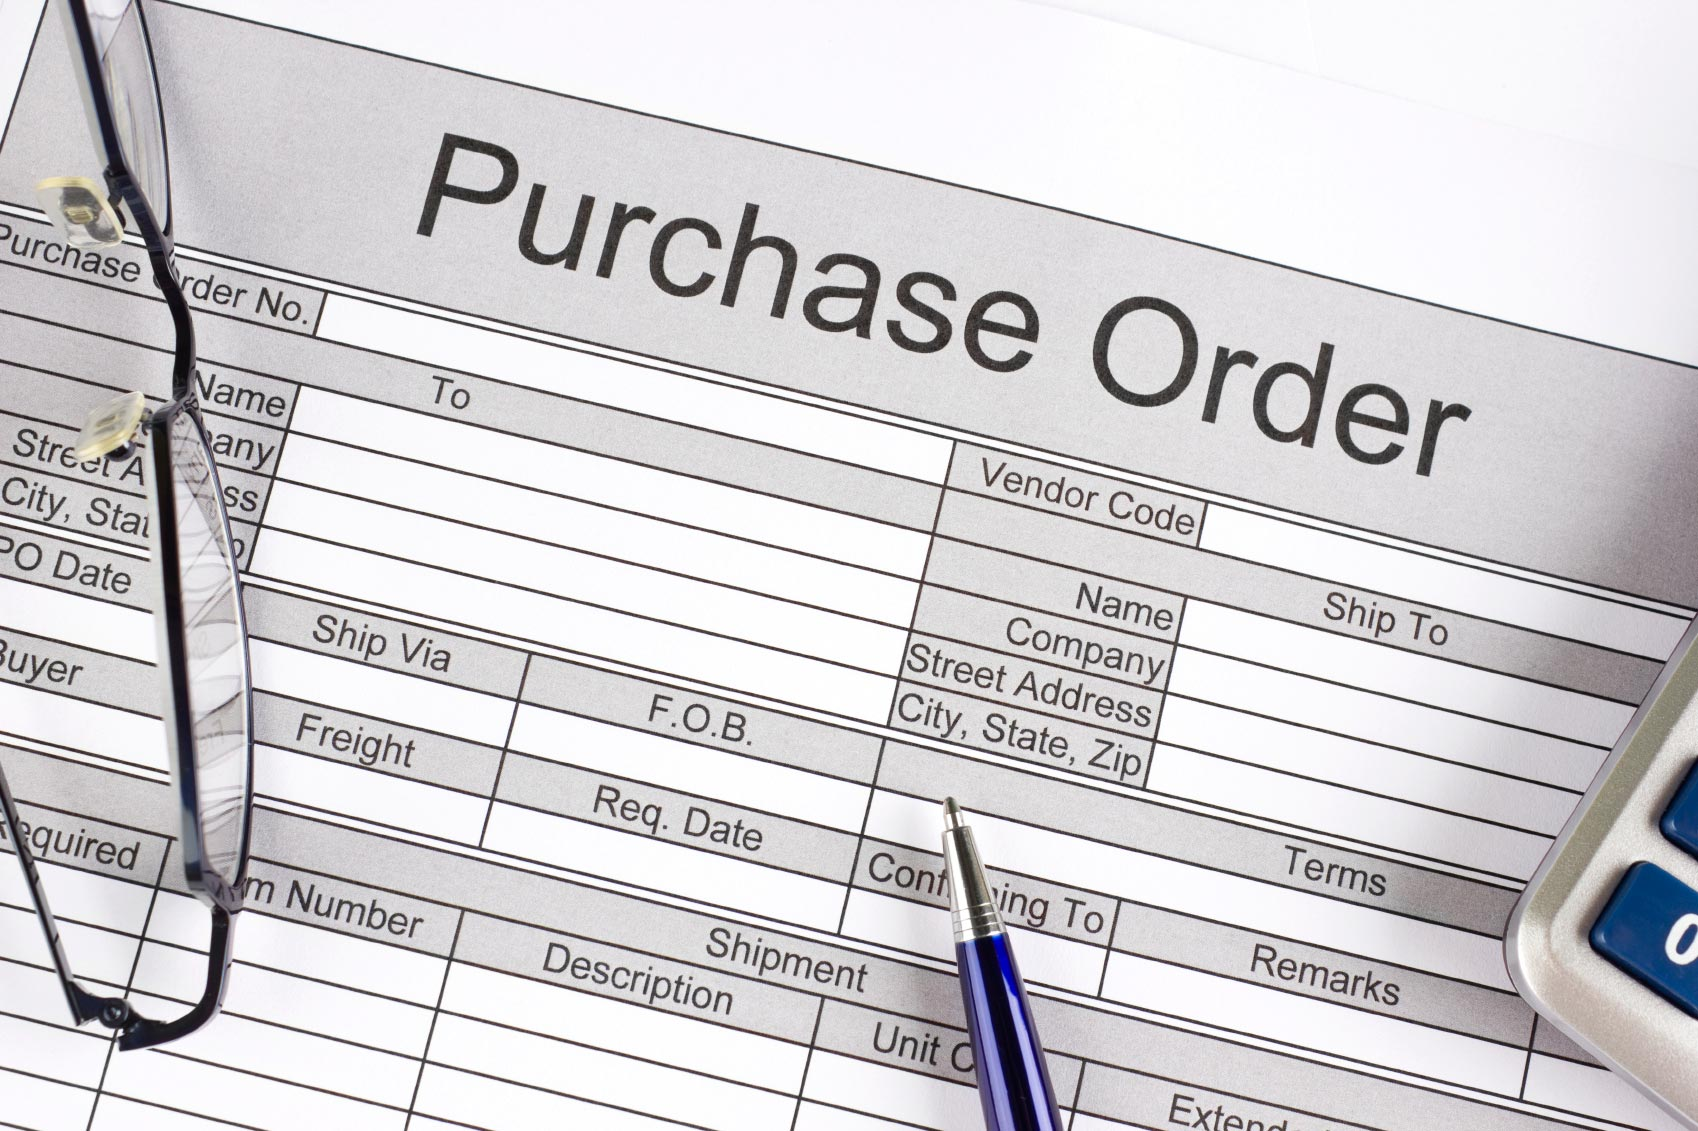 Purchase Order Basics For Small Business | Paychex